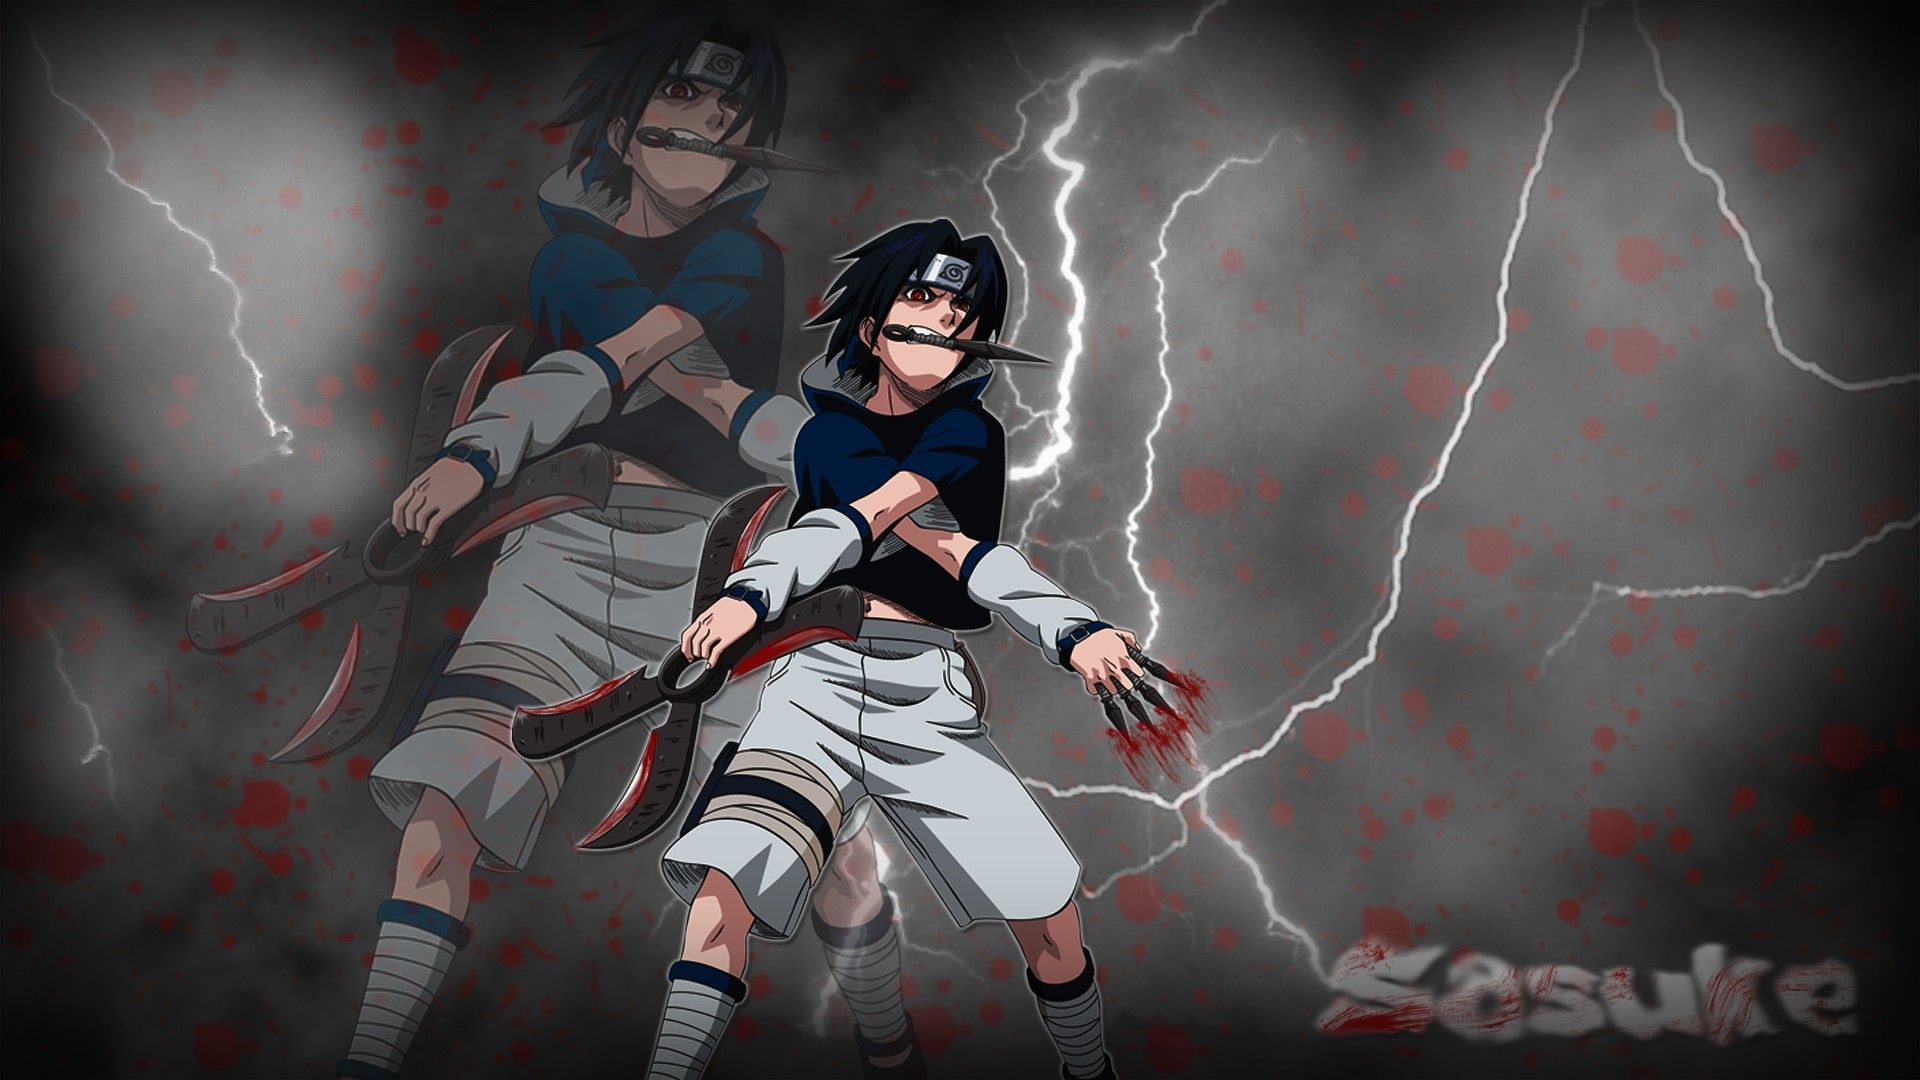 Pin by Sprint arts on ANIME Itachi, 4k wallpaper for